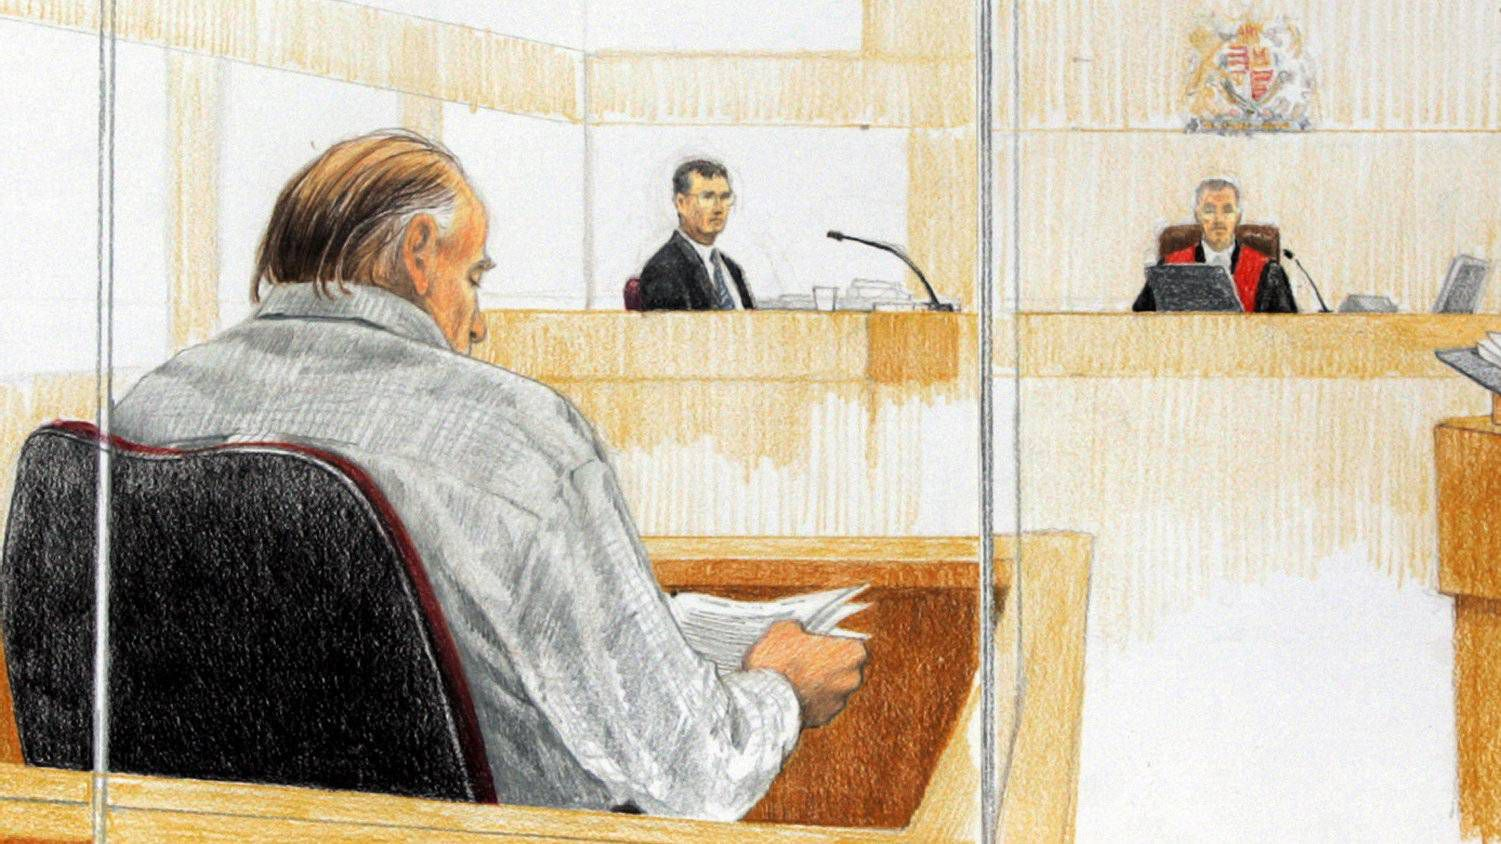 Pickton 'traumatized' by prostitute's attack in 1997 - The